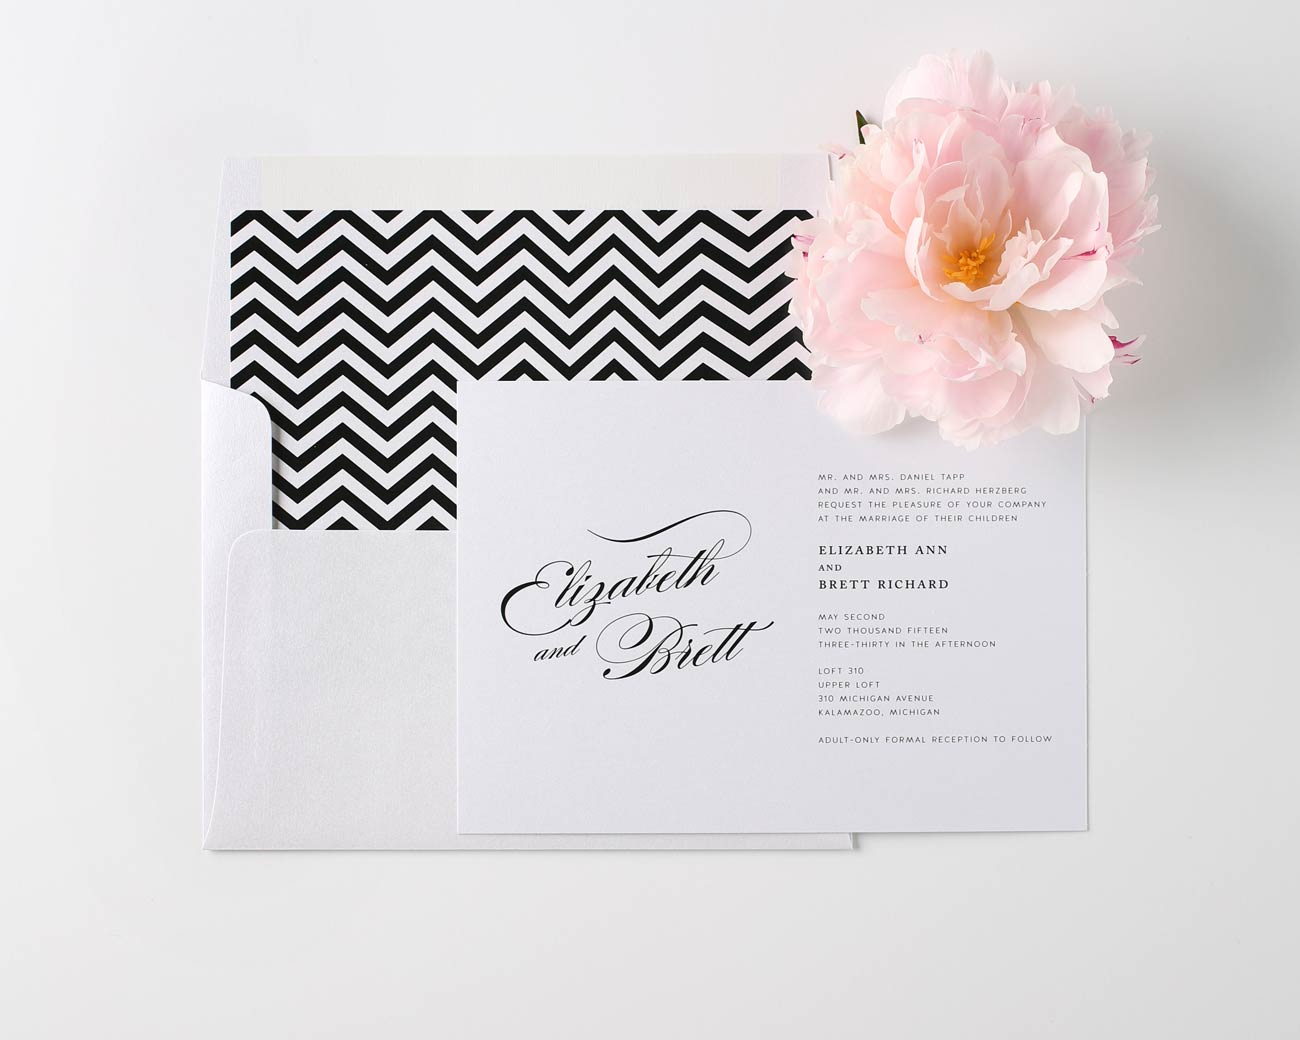 Romantic glam wedding invitations with chevron details